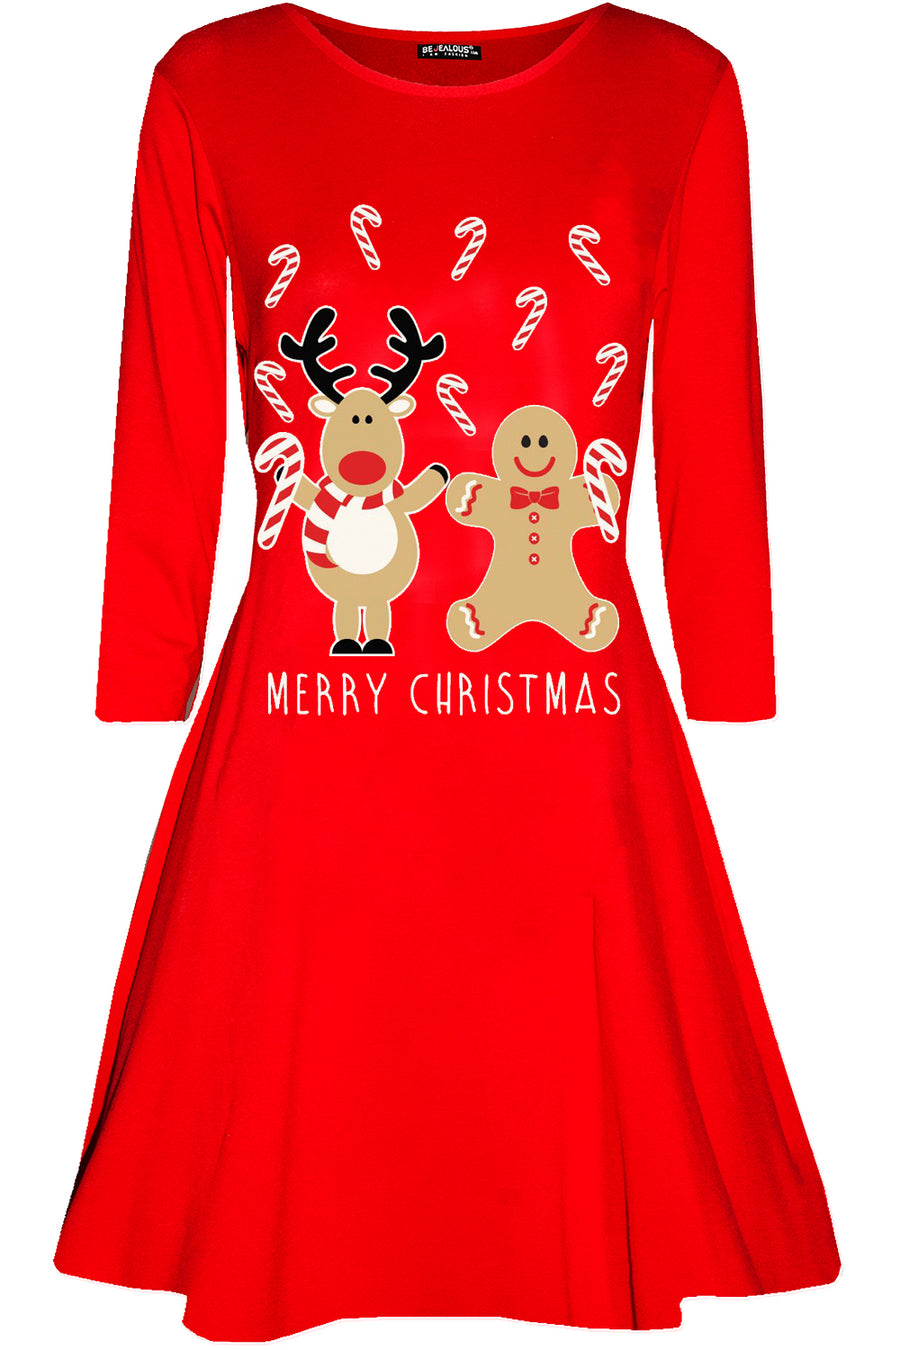 Christmas Print Long Sleeve Swing Dress - bejealous-com